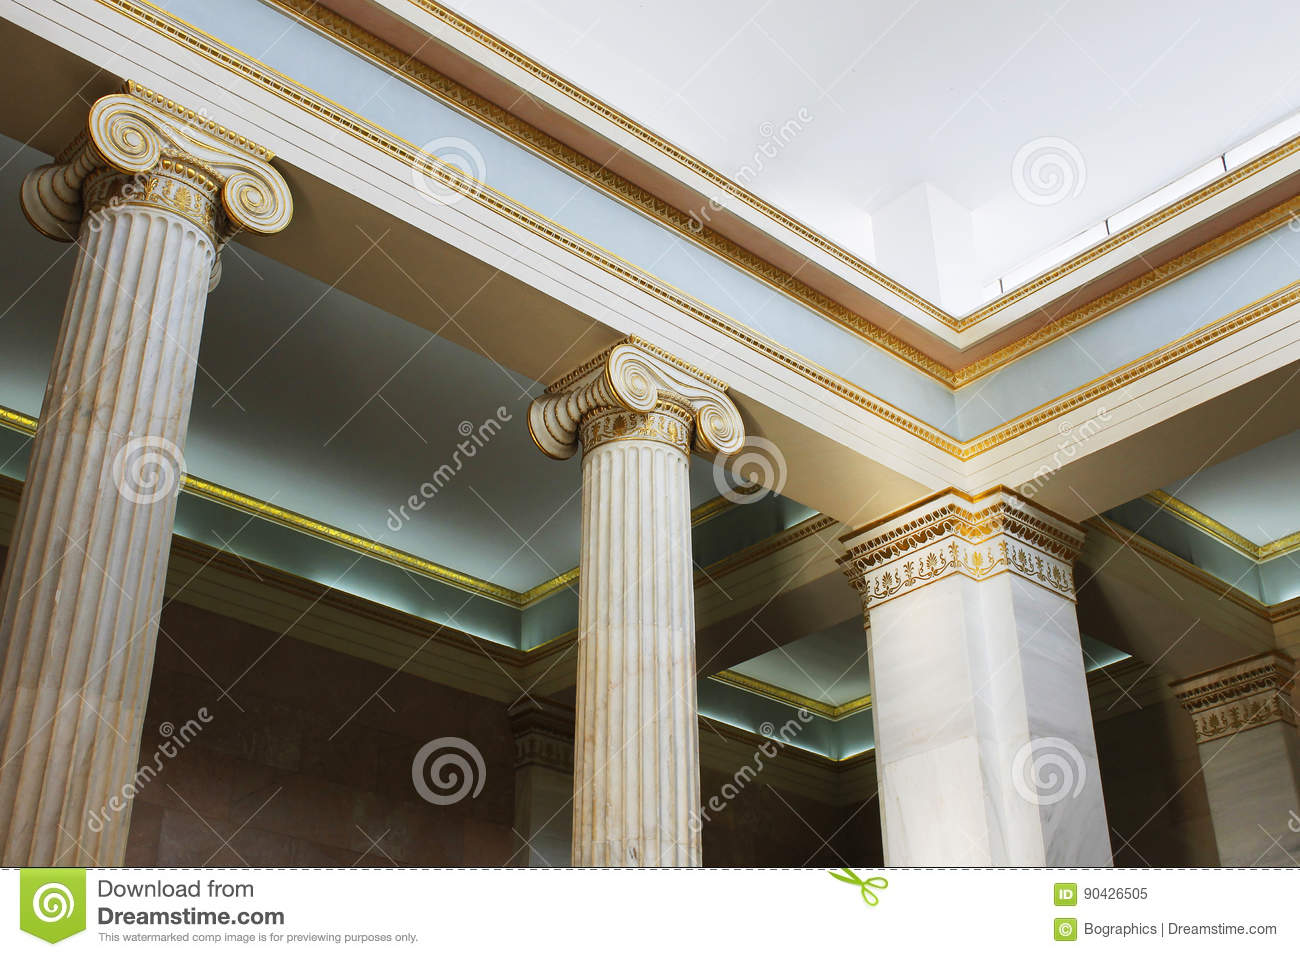 Greek ionic columns and ceiling inside museum